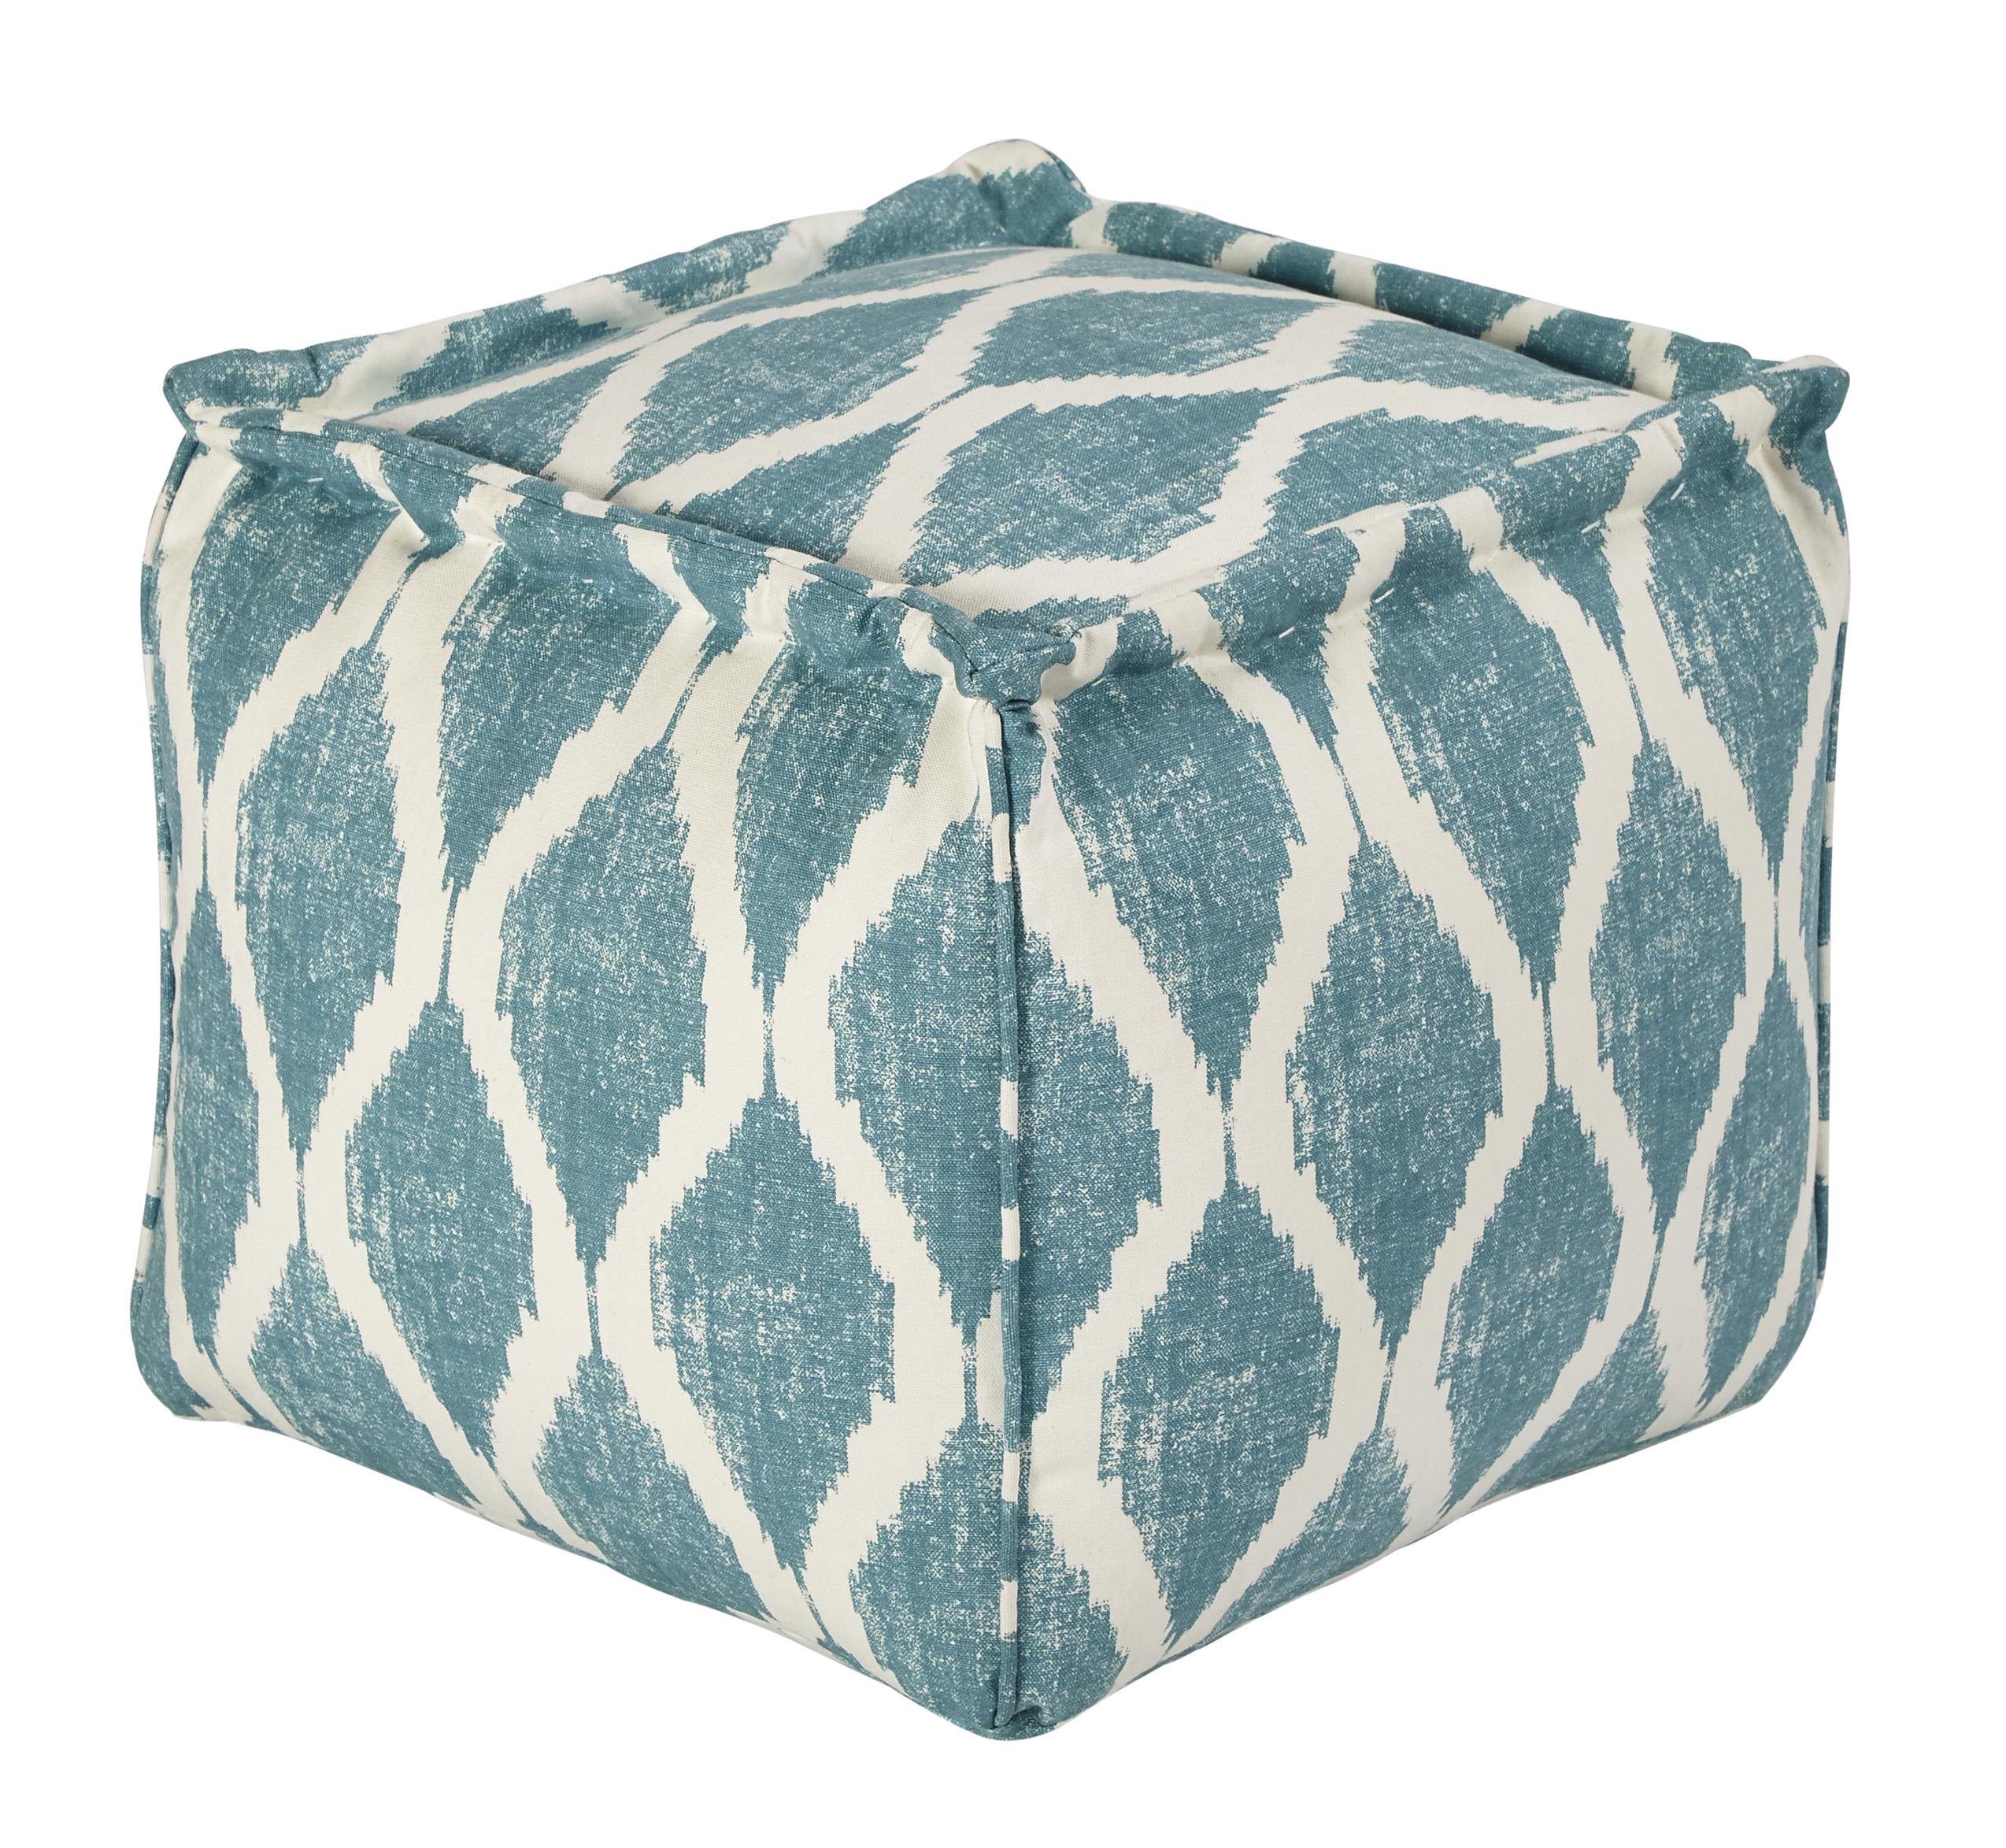 Signature Design by Ashley Poufs Bruce - Teal/White Pouf - Item Number: A1000544